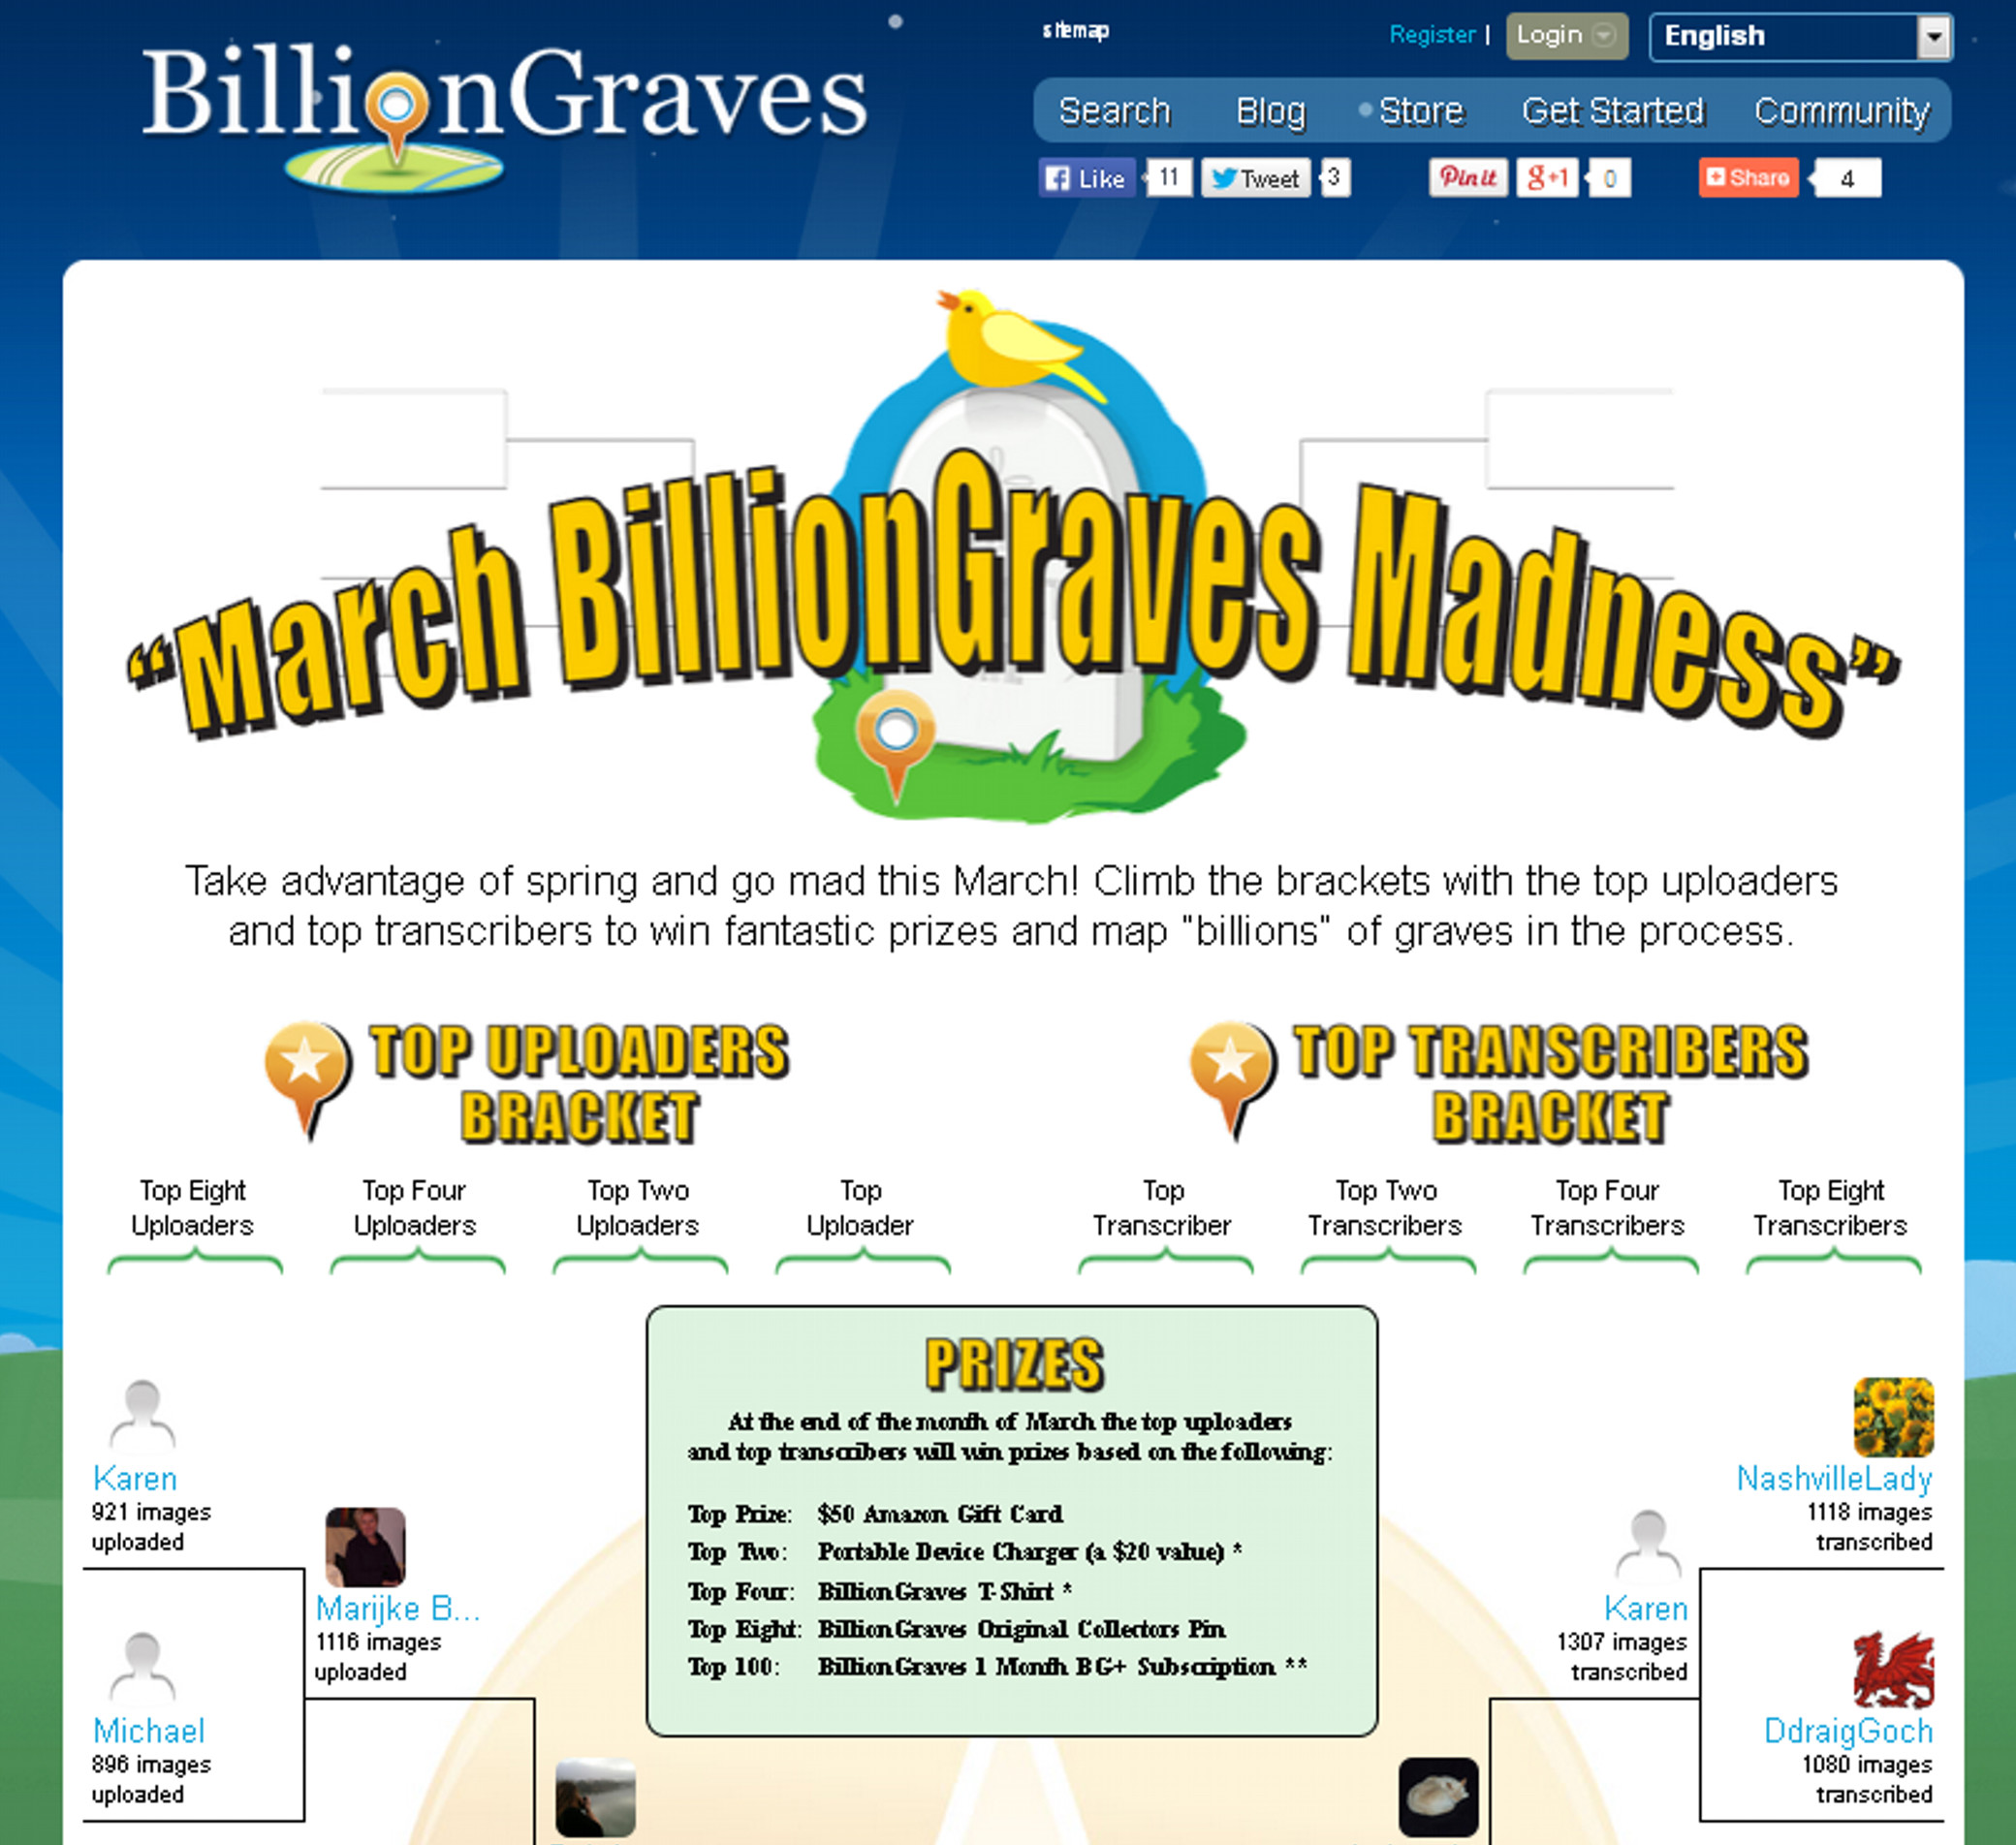 BillionGraves has March Madness